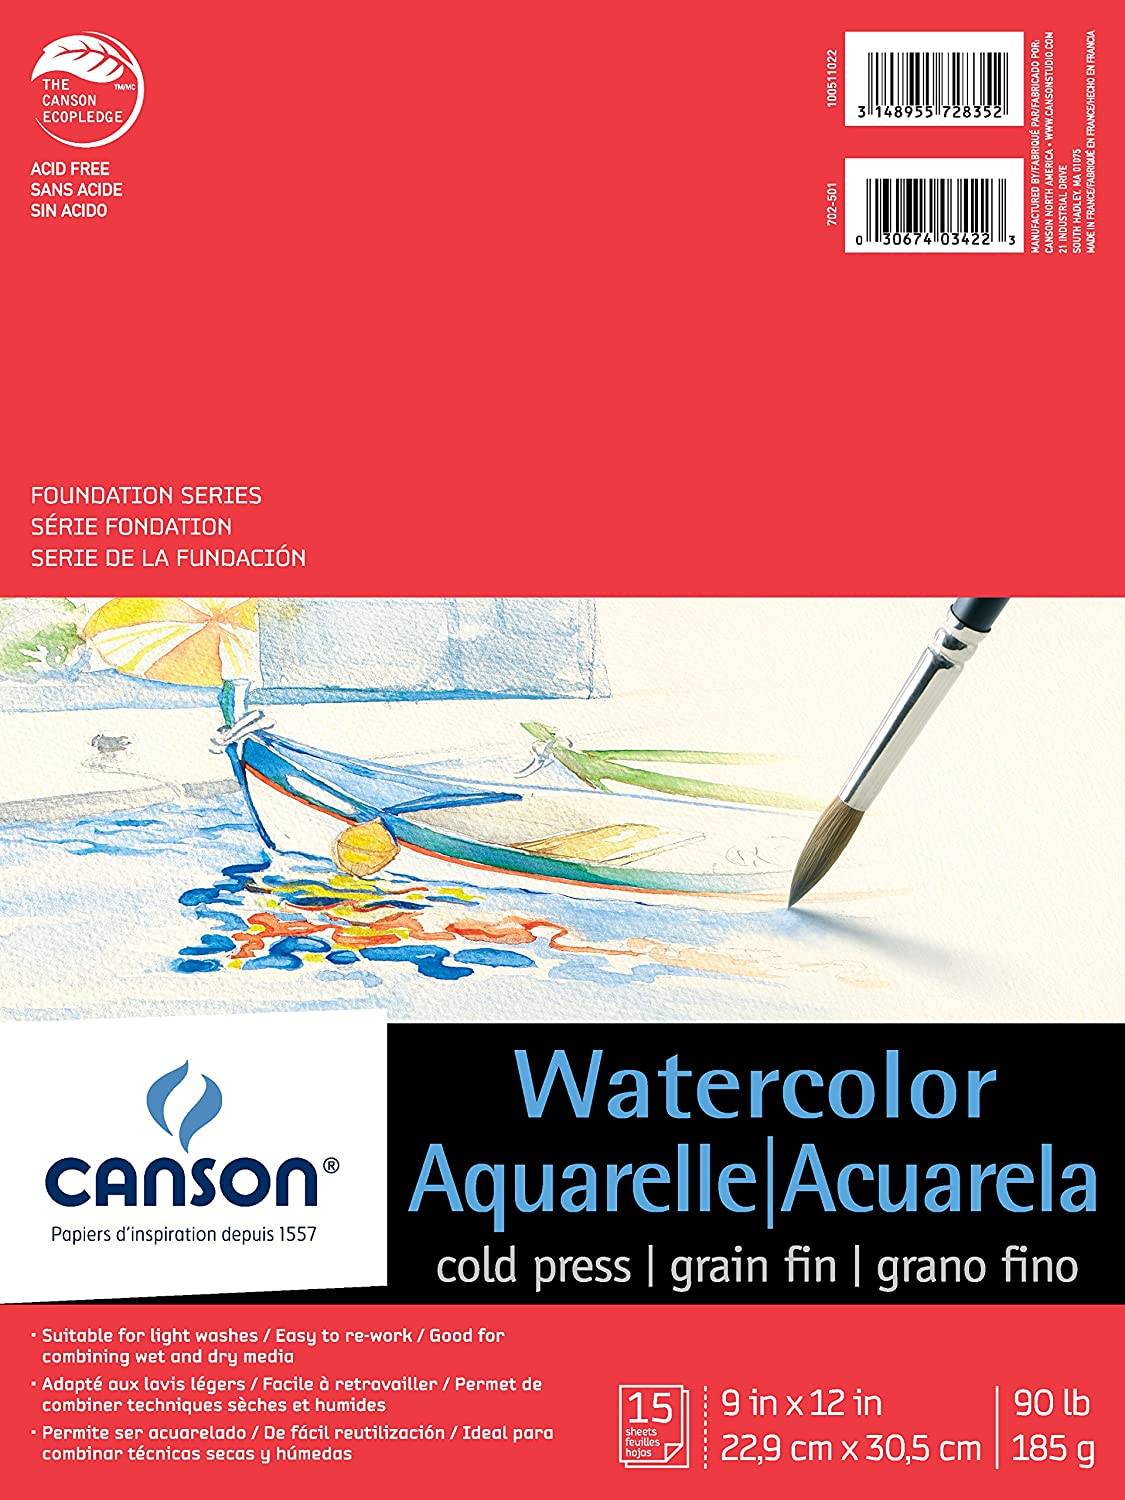 90 Pound 15 Sheets Fold Over Canson Foundation Series Watercolor Paper Pad for Wet or Dry Media 9 x 12 Inch